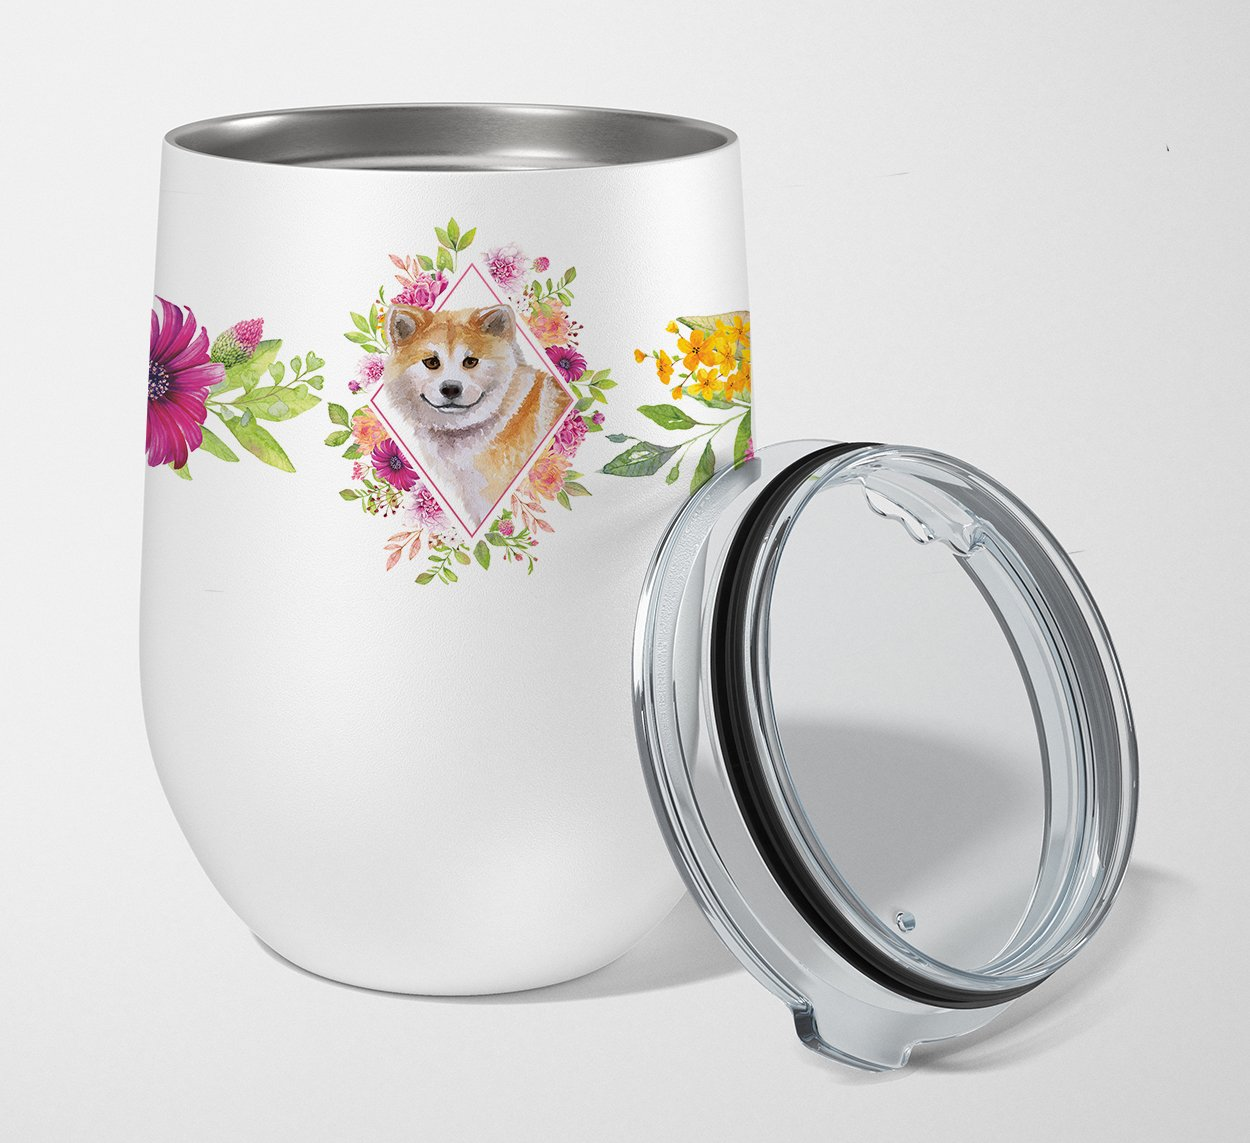 Shiba Inu Pink Flowers Stainless Steel 12 oz Stemless Wine Glass CK4183TBL12 by Caroline's Treasures